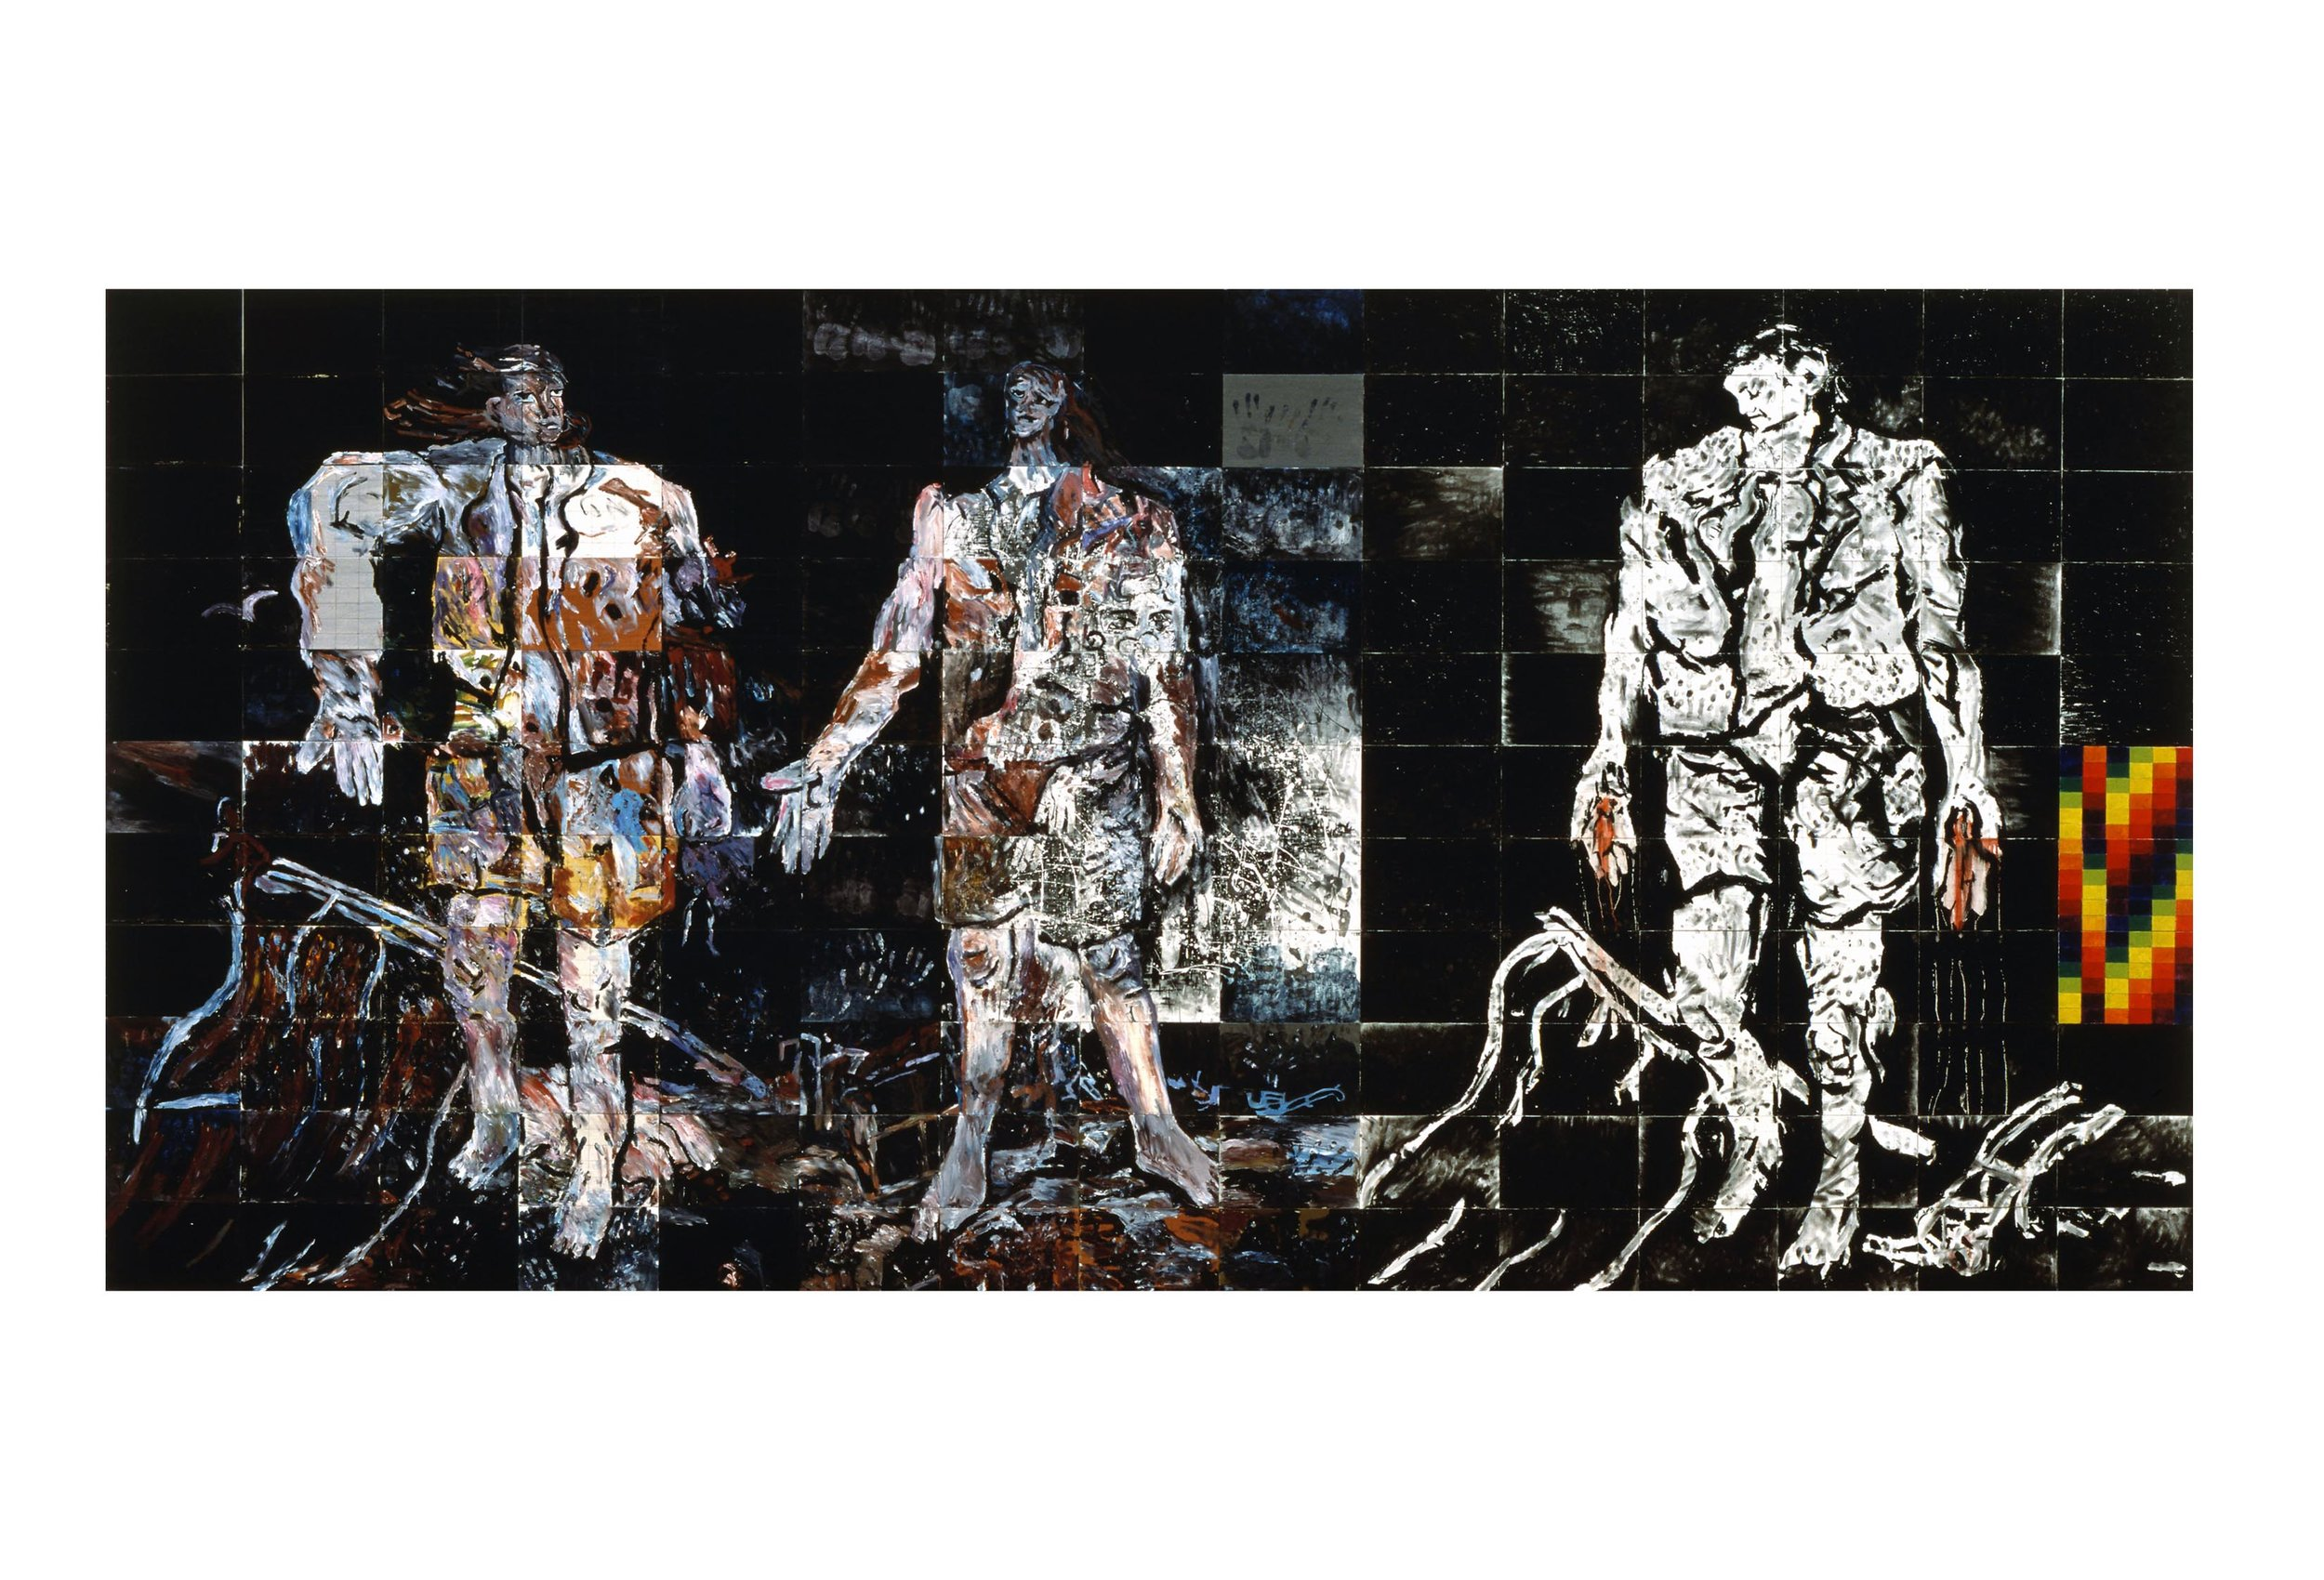 Imants Tillers   The World of Men , 1984  synthetic polymer paint, oilstick, oil on 165 canvasboards, nos. 3390 - 3554 275 x 570 cm Collection: Queensland Art Gallery, Brisbane